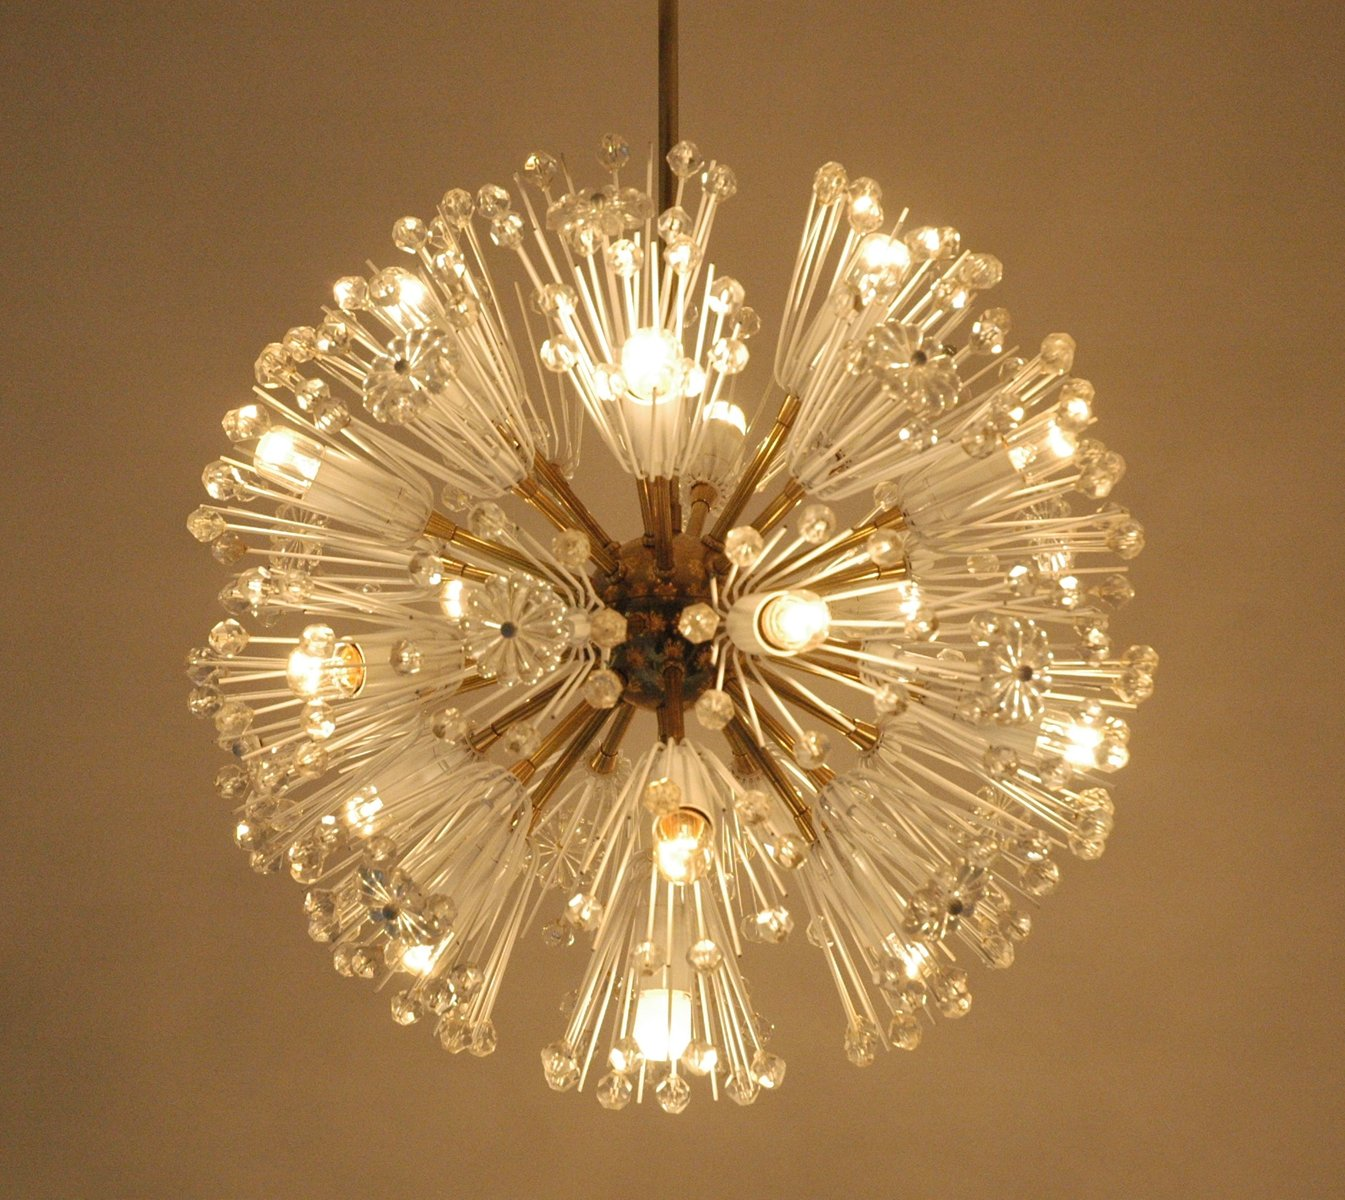 Snowflake chandelier by emil stejnar for rubert nikoll 1950s for price per piece mozeypictures Choice Image